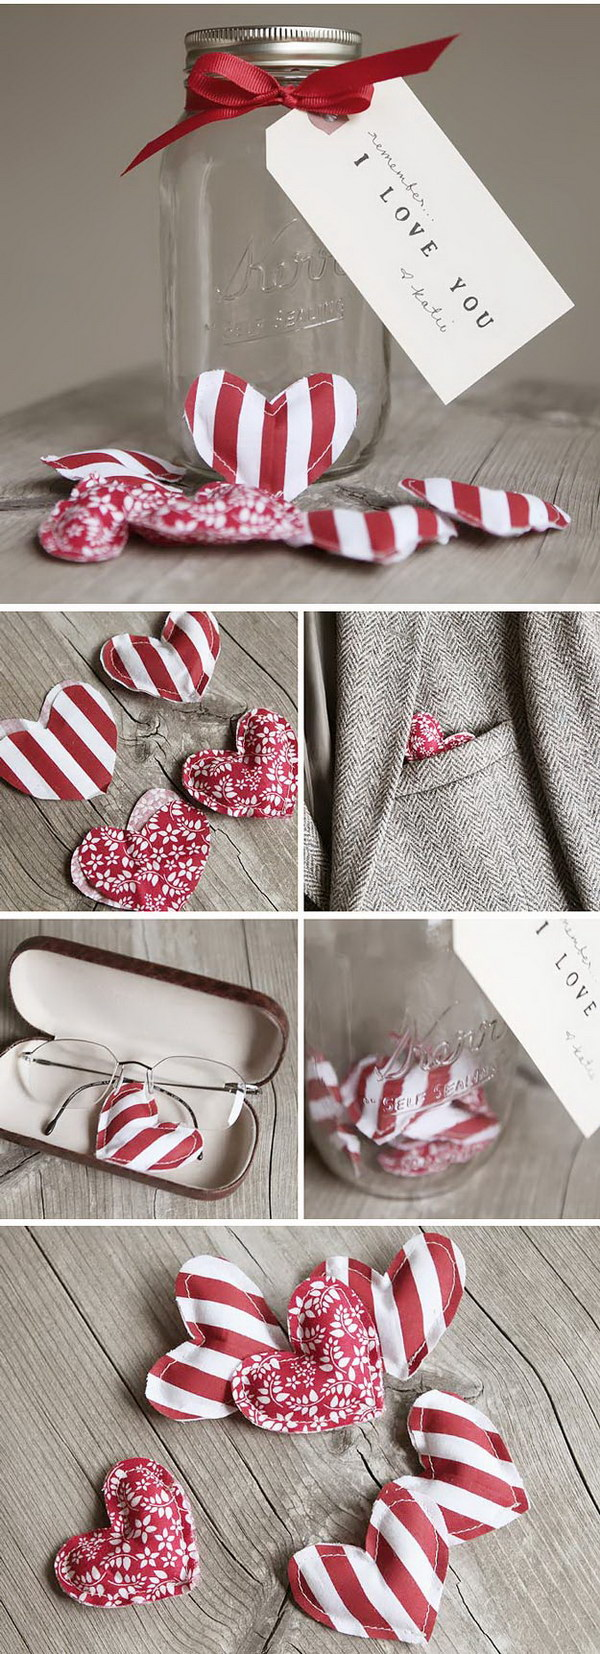 Fabric Hearts in Mason Jar